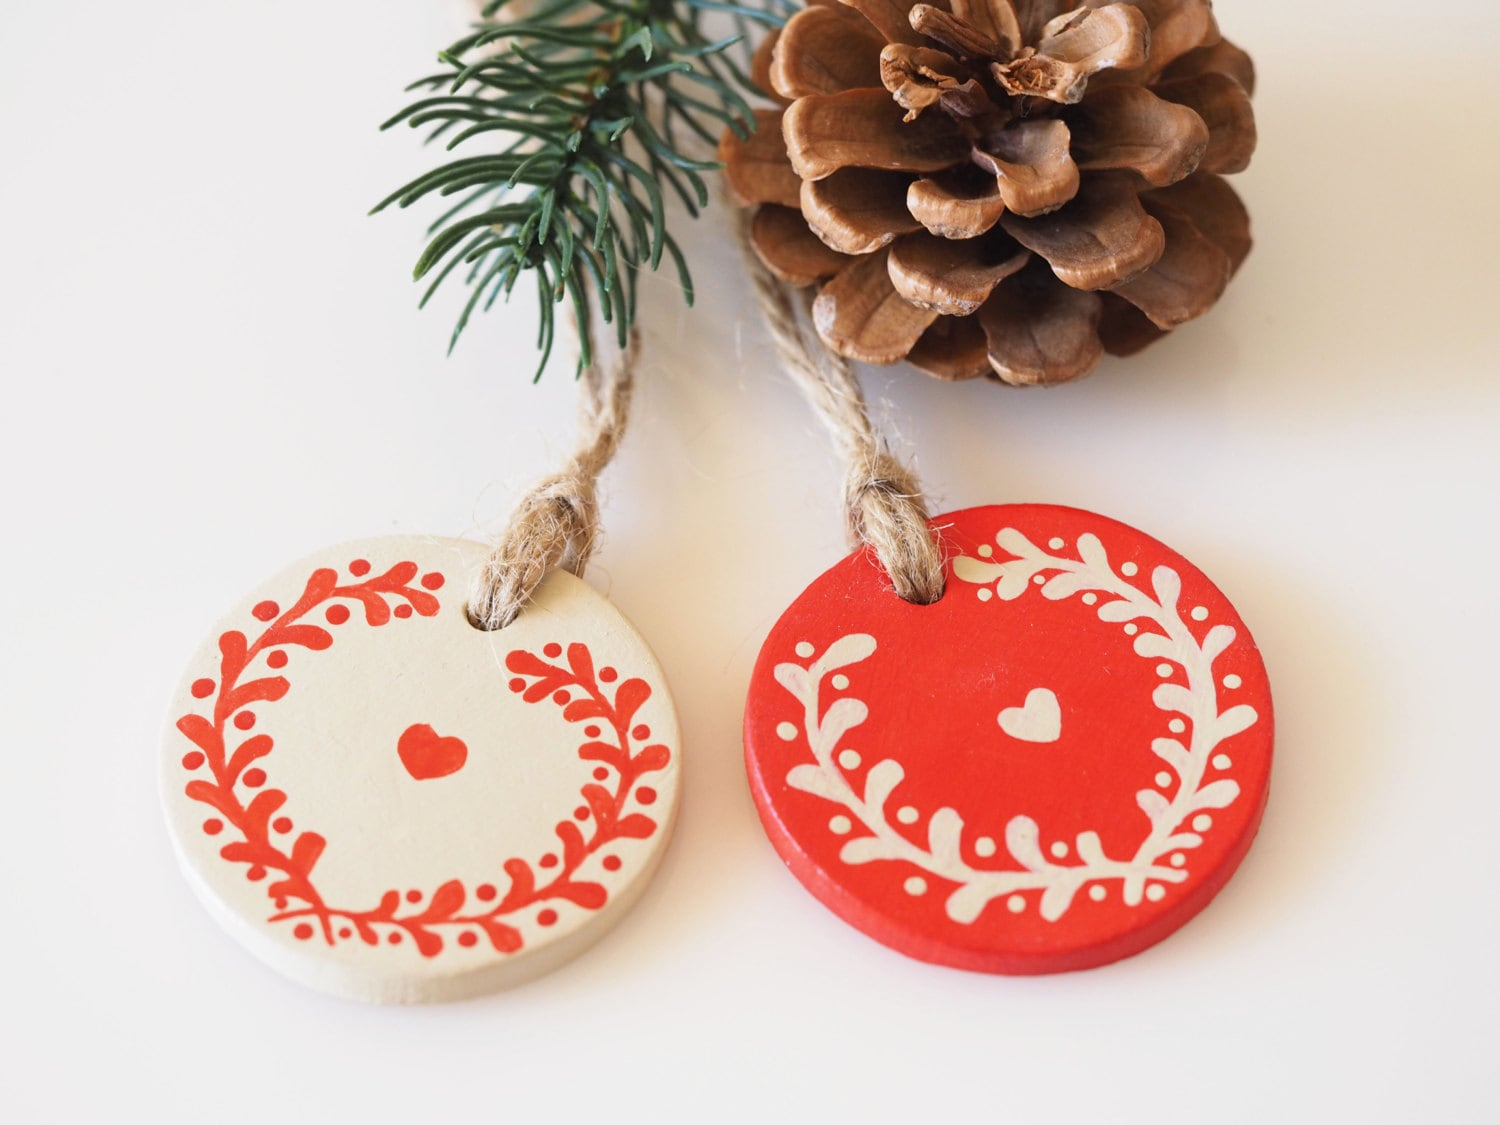 Nordic christmas ornaments - Scandinavian Christmas Decorations Set Of 2 Clay Home Ornaments Nordic Christmas Decor Rustic